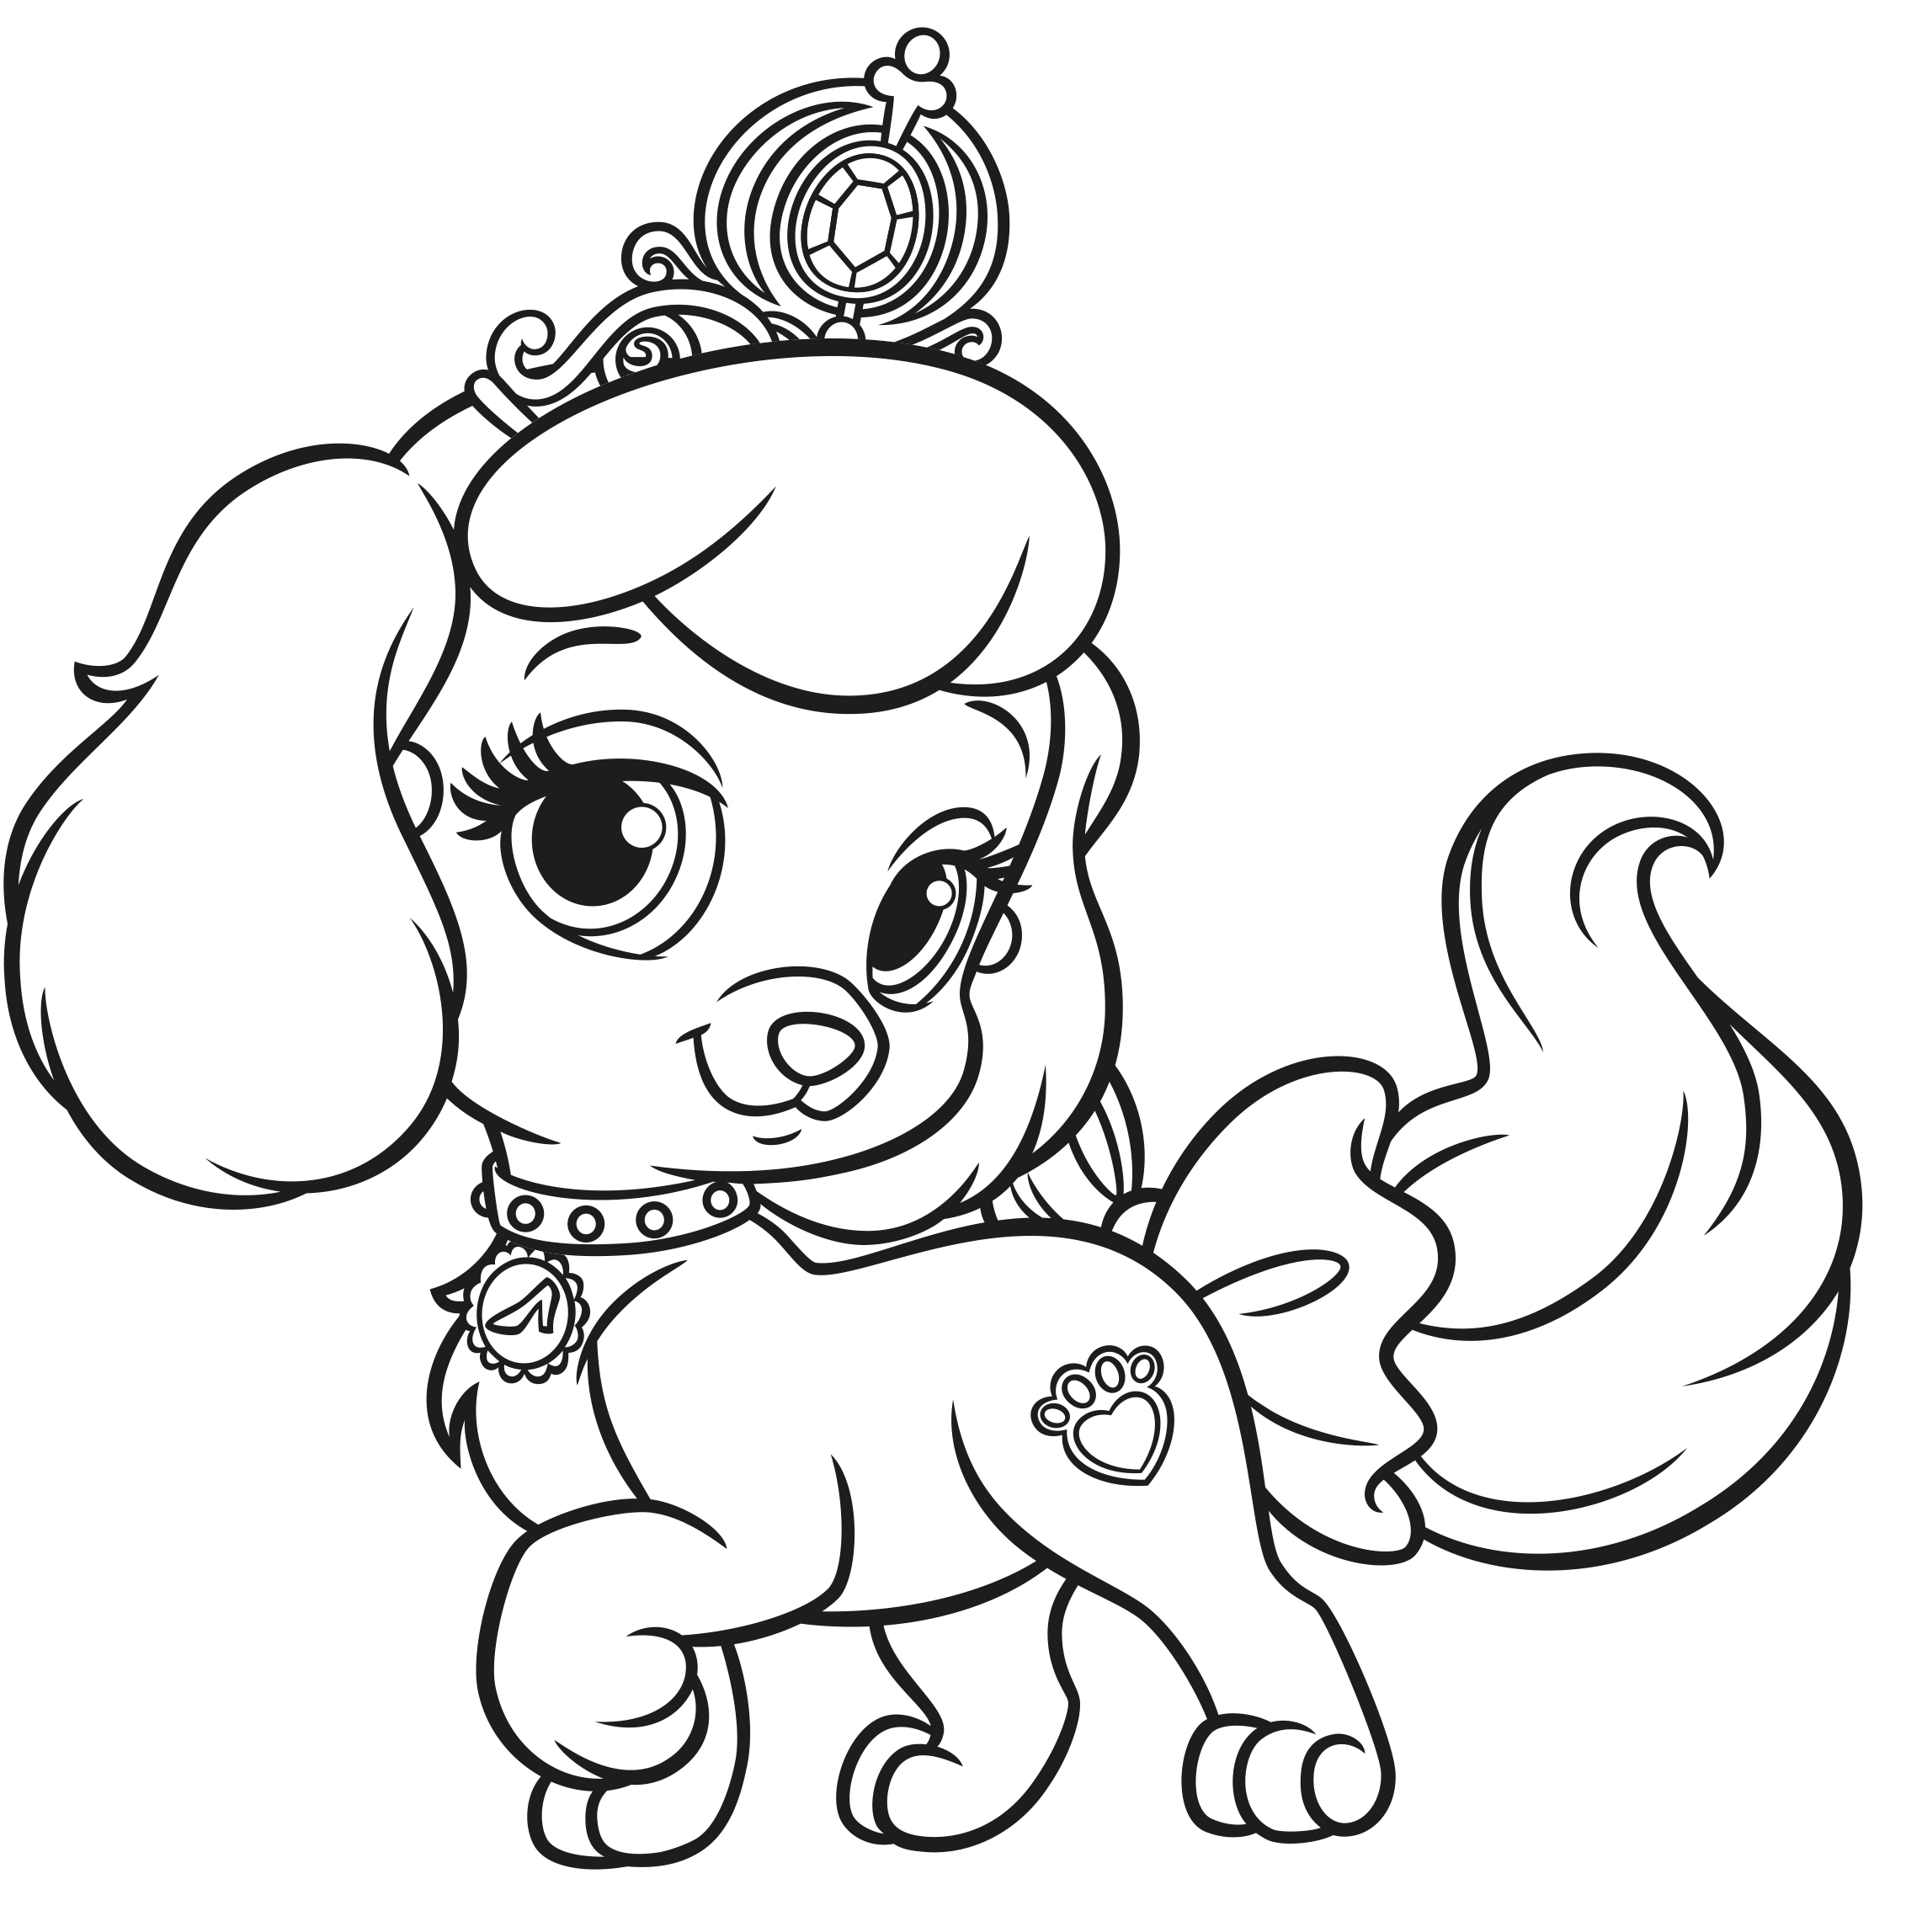 Free coloring pages of palace pets for Hase malen